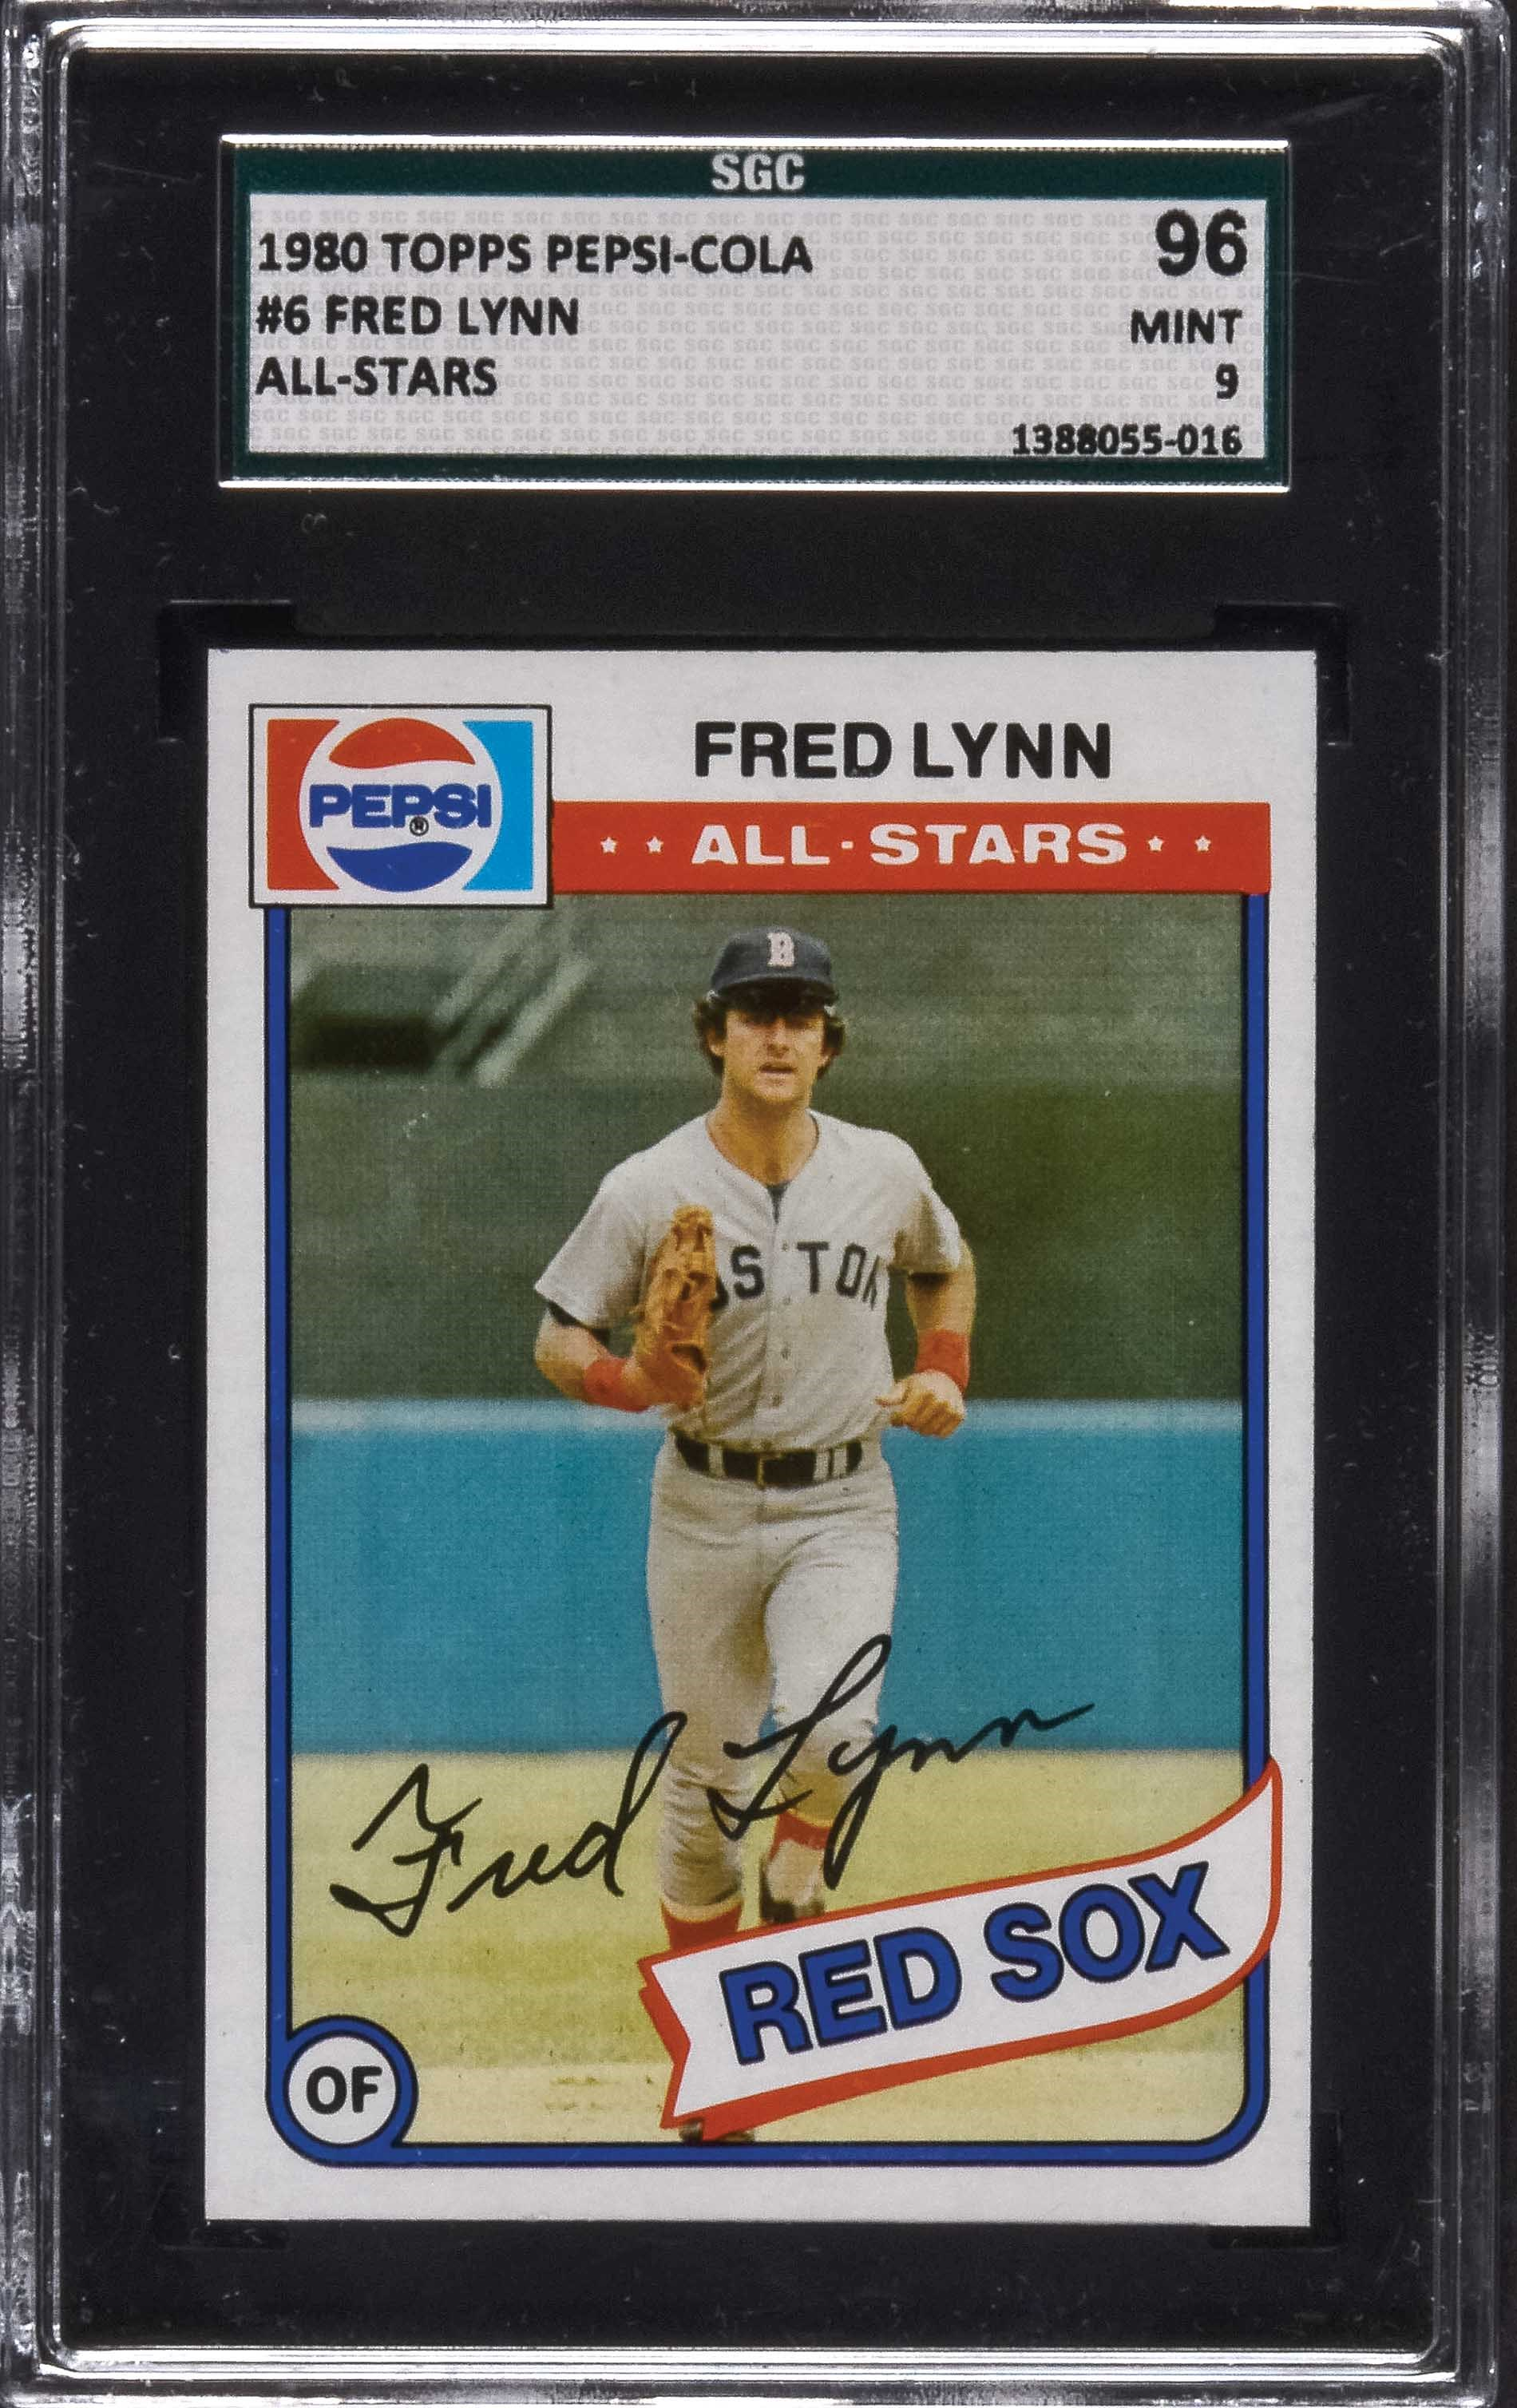 Extremely Rare 1980 Topps Pepsi-Cola All-Stars #6 Fred Lynn SGC